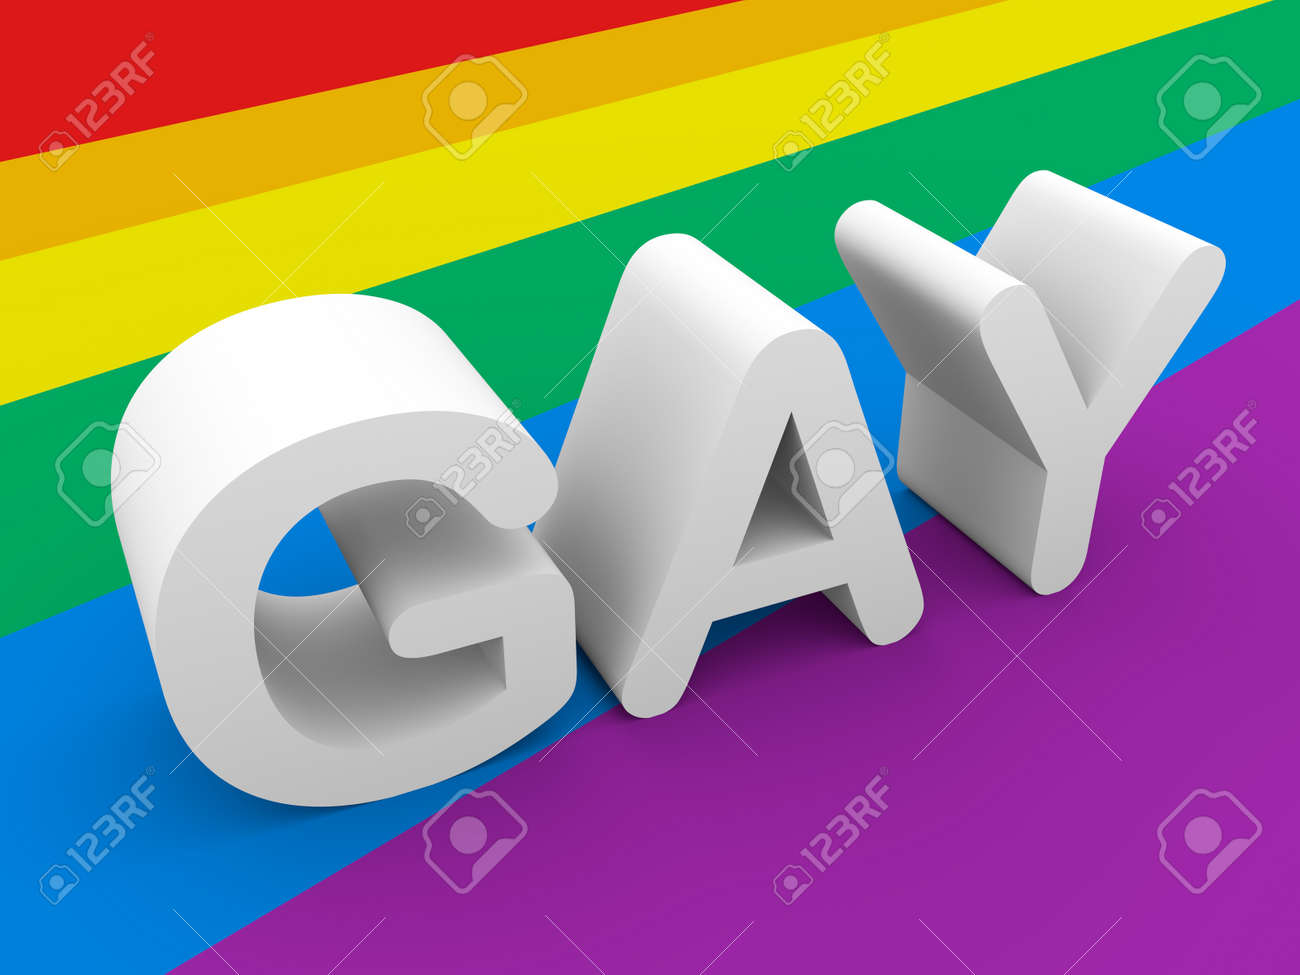 The word gay